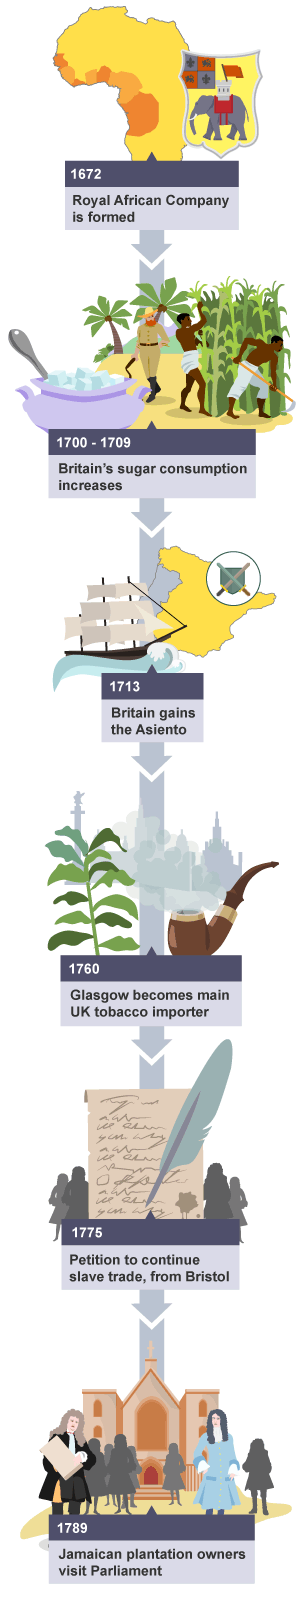 caribbean britain industrial revolution The industrial revolution occurred when agrarian societies became more industrialized and urban learn where and when the industrial revolution started, and the inventions that made it possible.